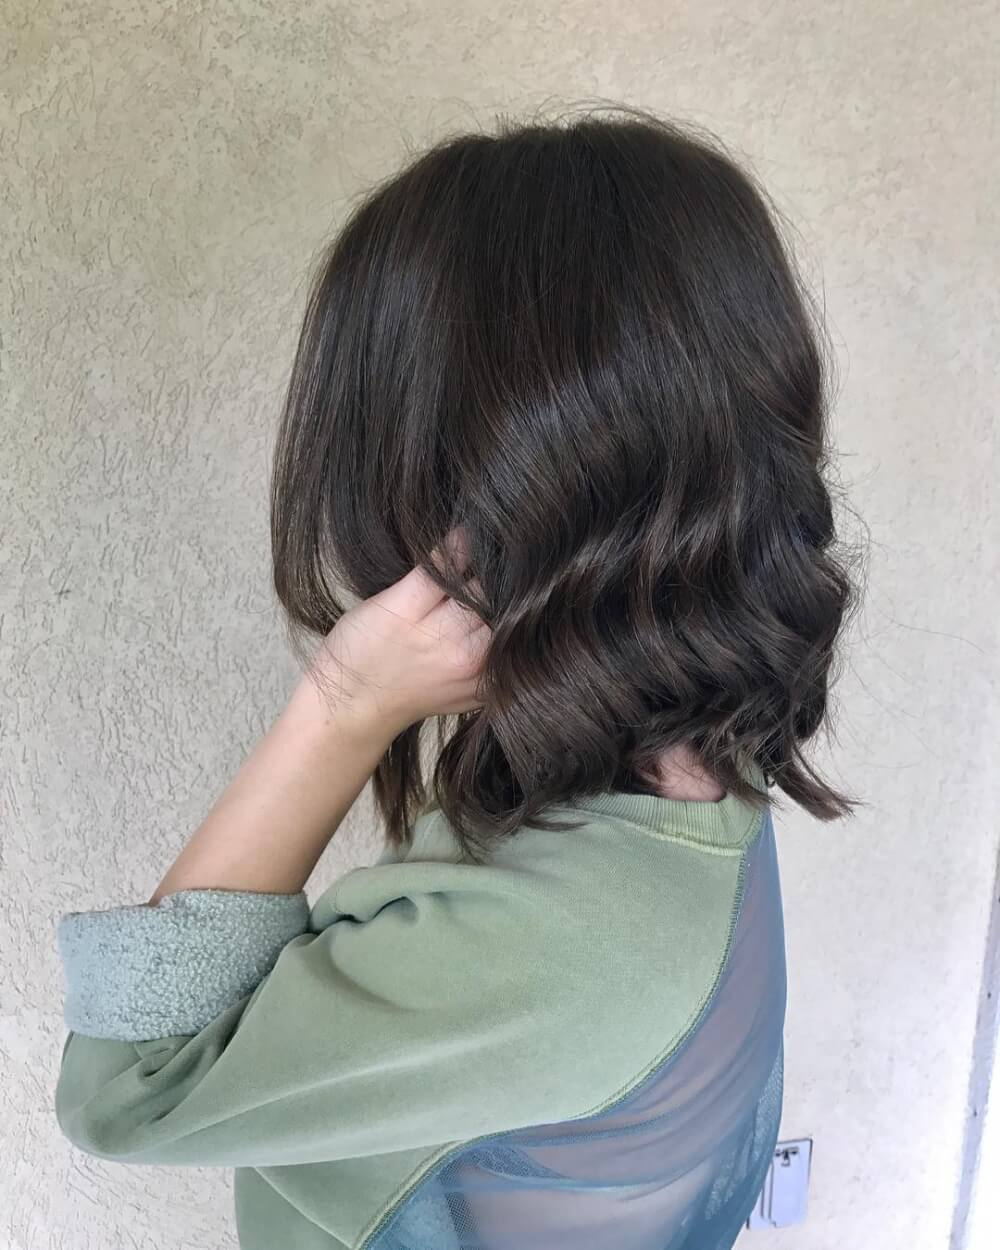 Cut-In Texture hairstyle